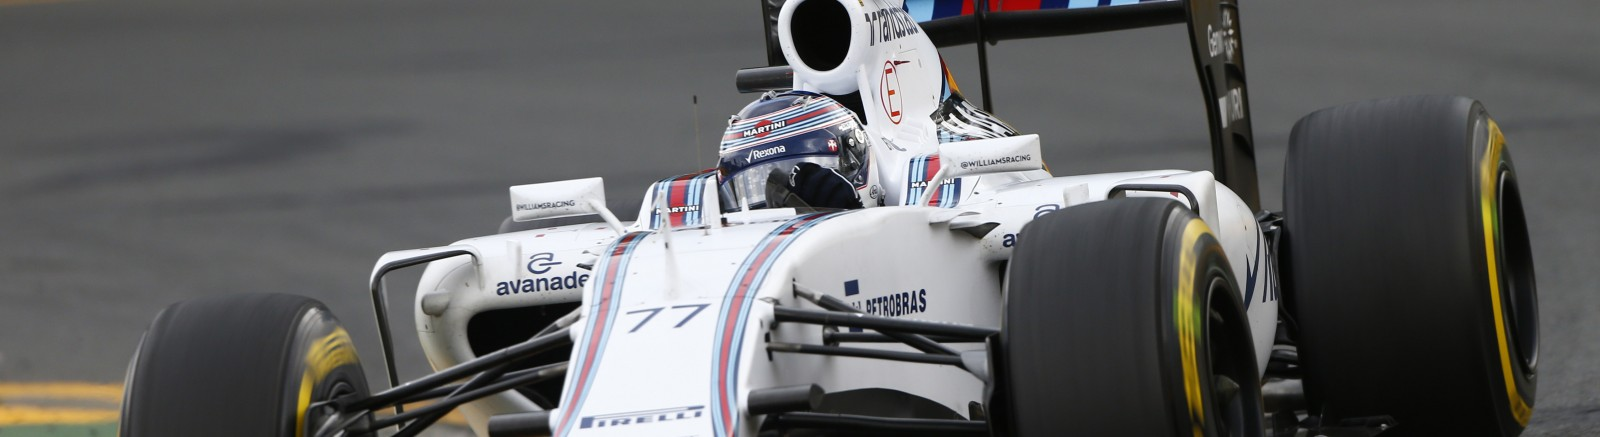 BOTTAS valtteri, williams f1 mercedes fw37, 2015 Formula 1 Australian Grand Prix,